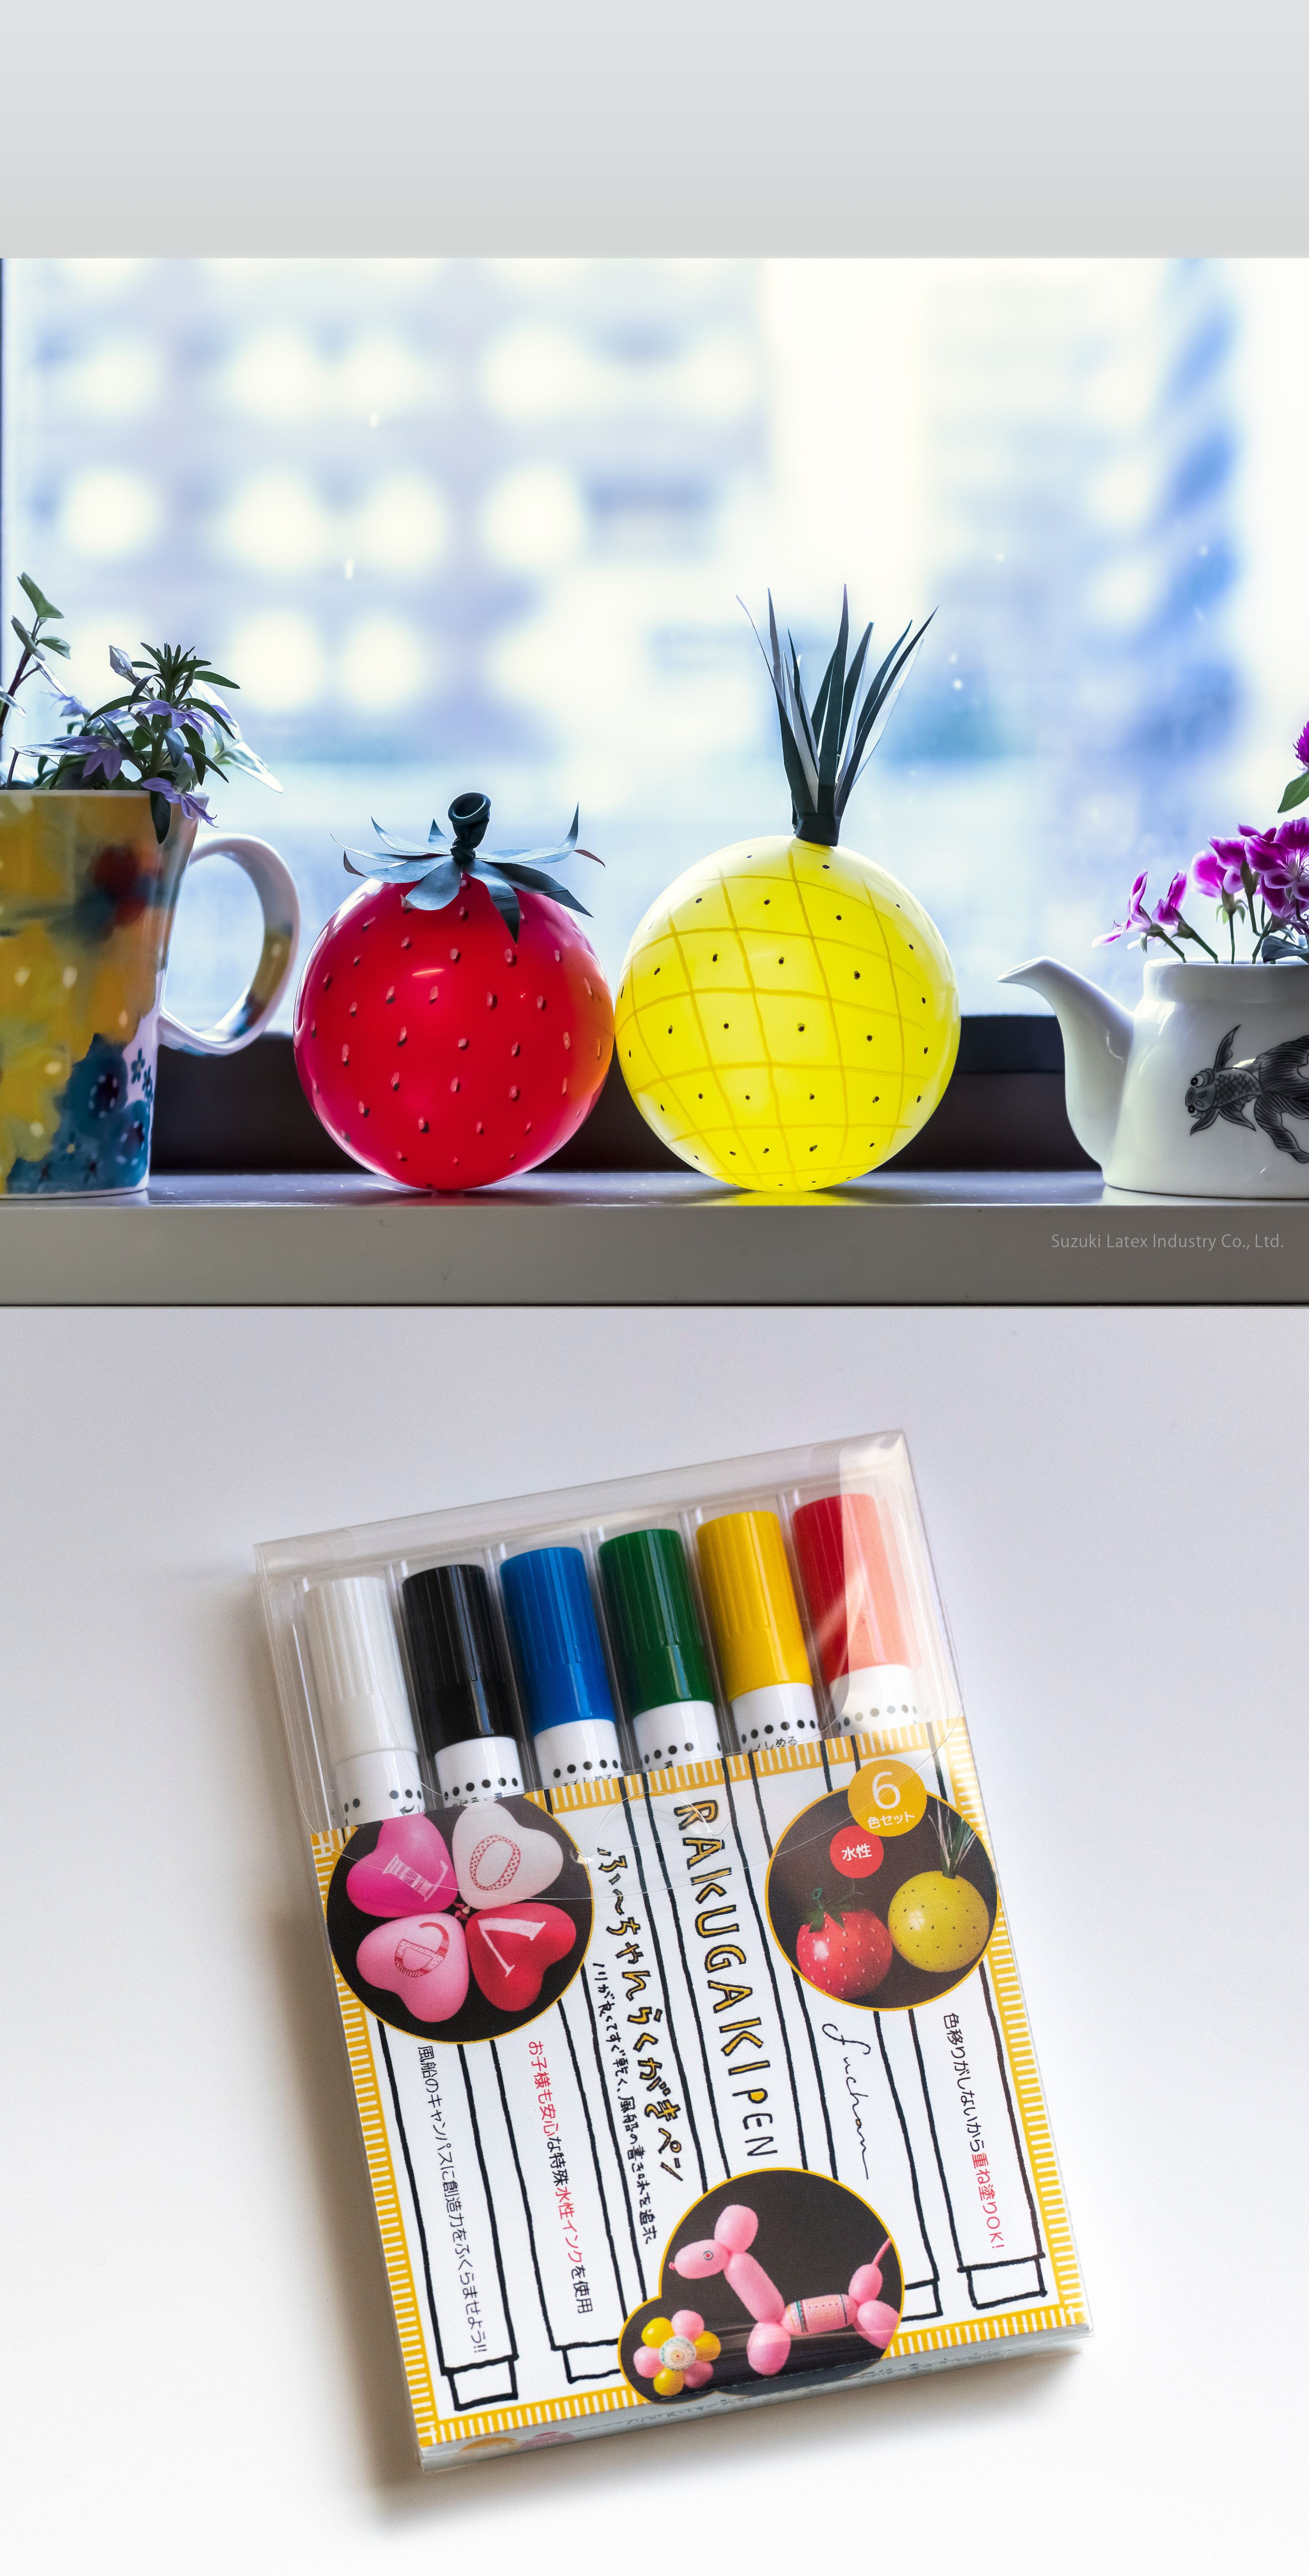 Water Based Paint Markers For Balloons